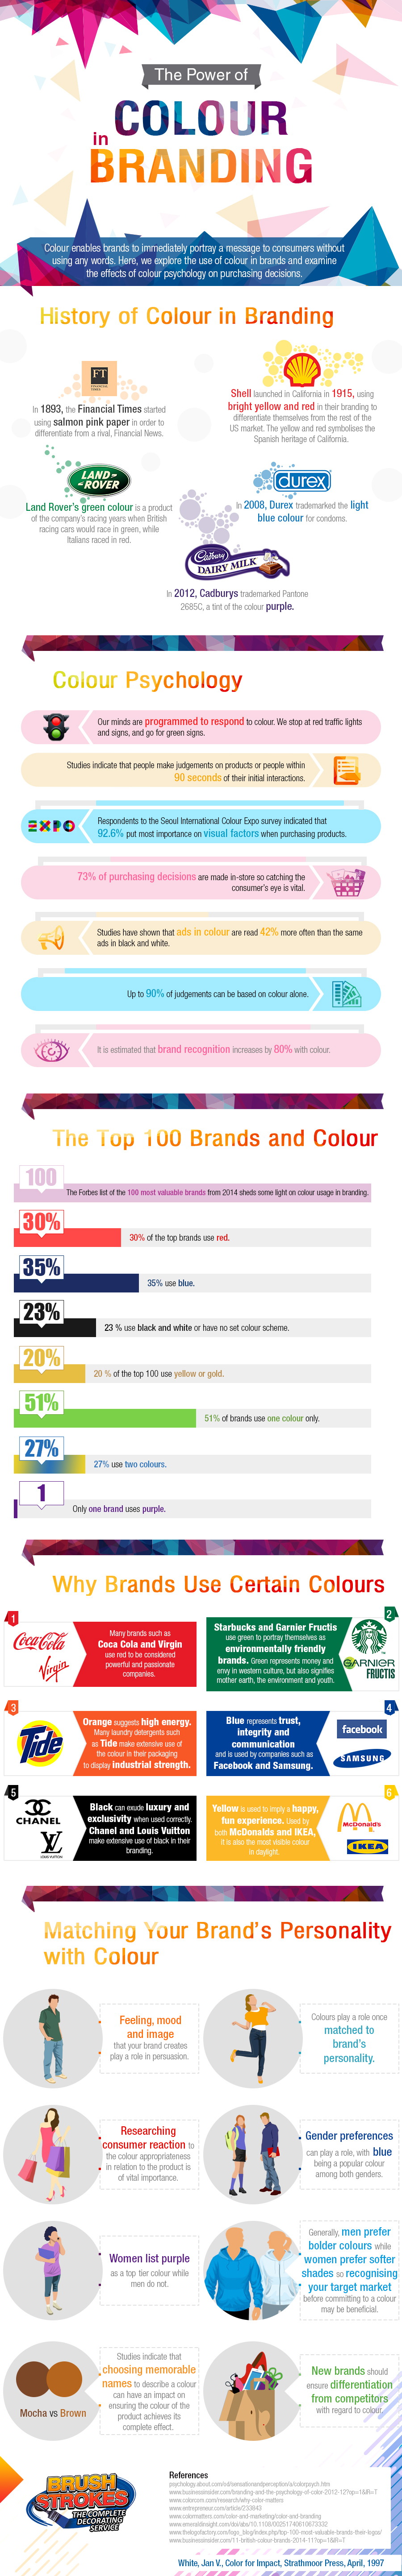 Power of Colour in Branding Infographic